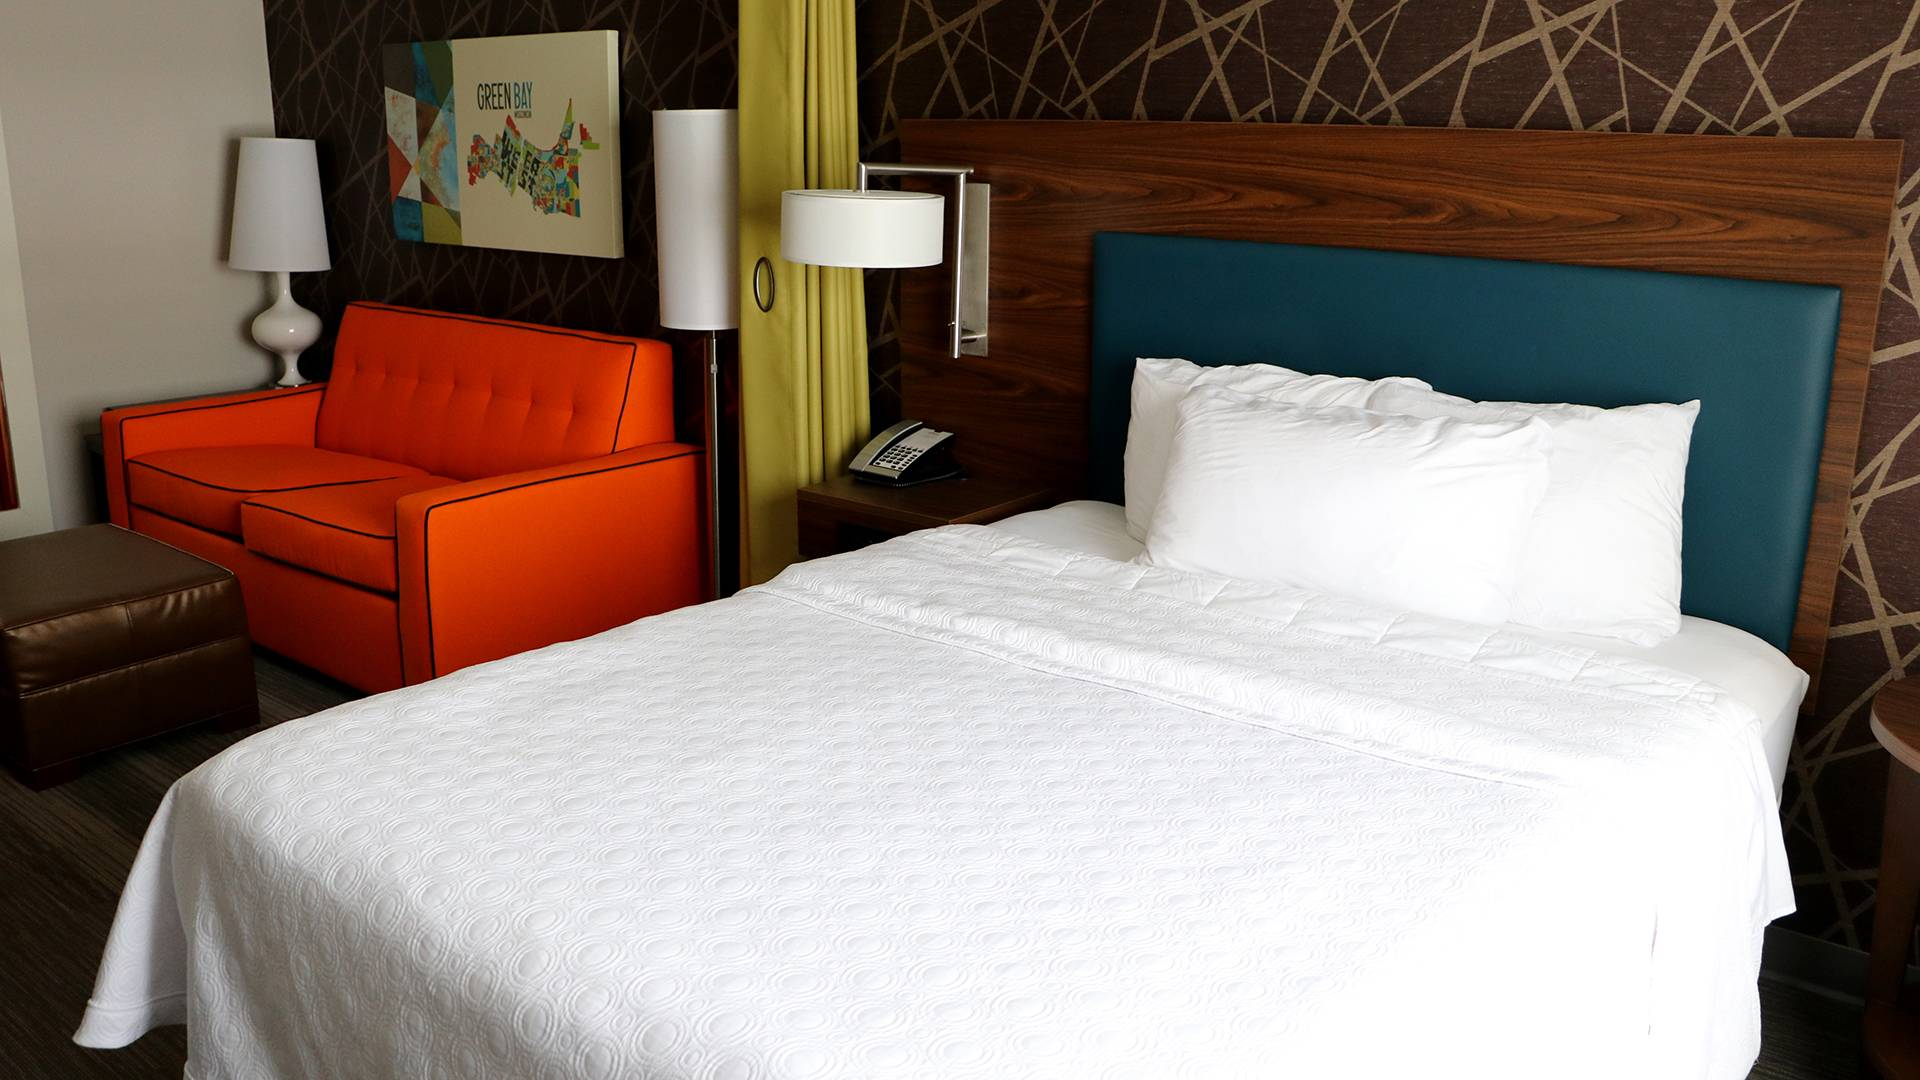 Greater Green Bay has a variety of accommodations to suit your needs, whether you're looking for a quaint bed and breakfast, your favorite chain brand hotel or the most convenient by location.